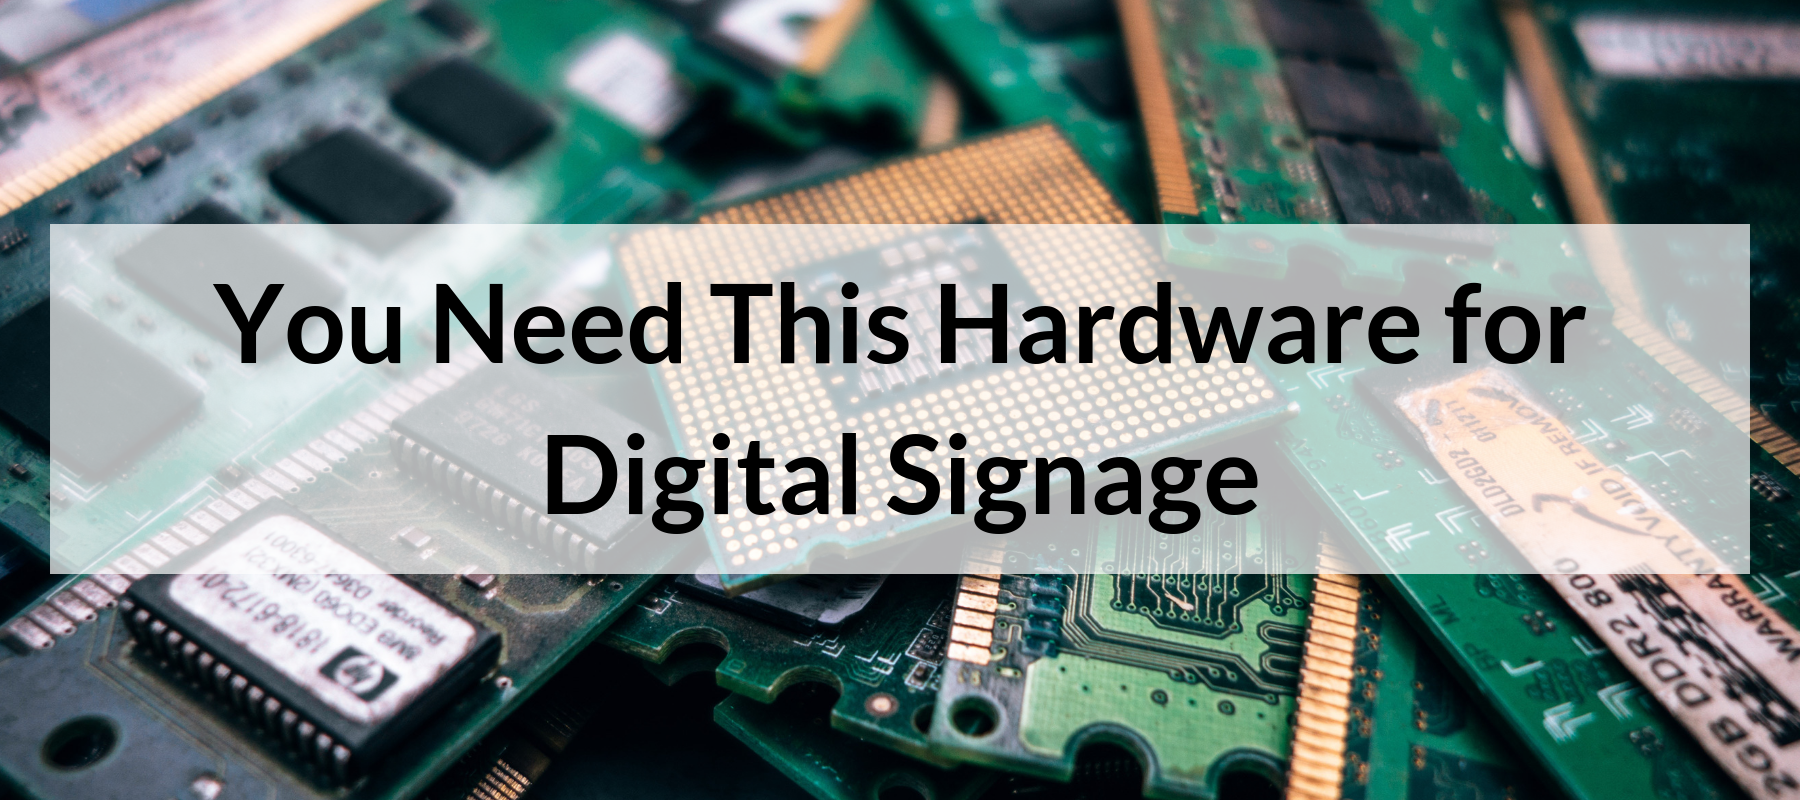 You Need This Hardware for Digital Signage